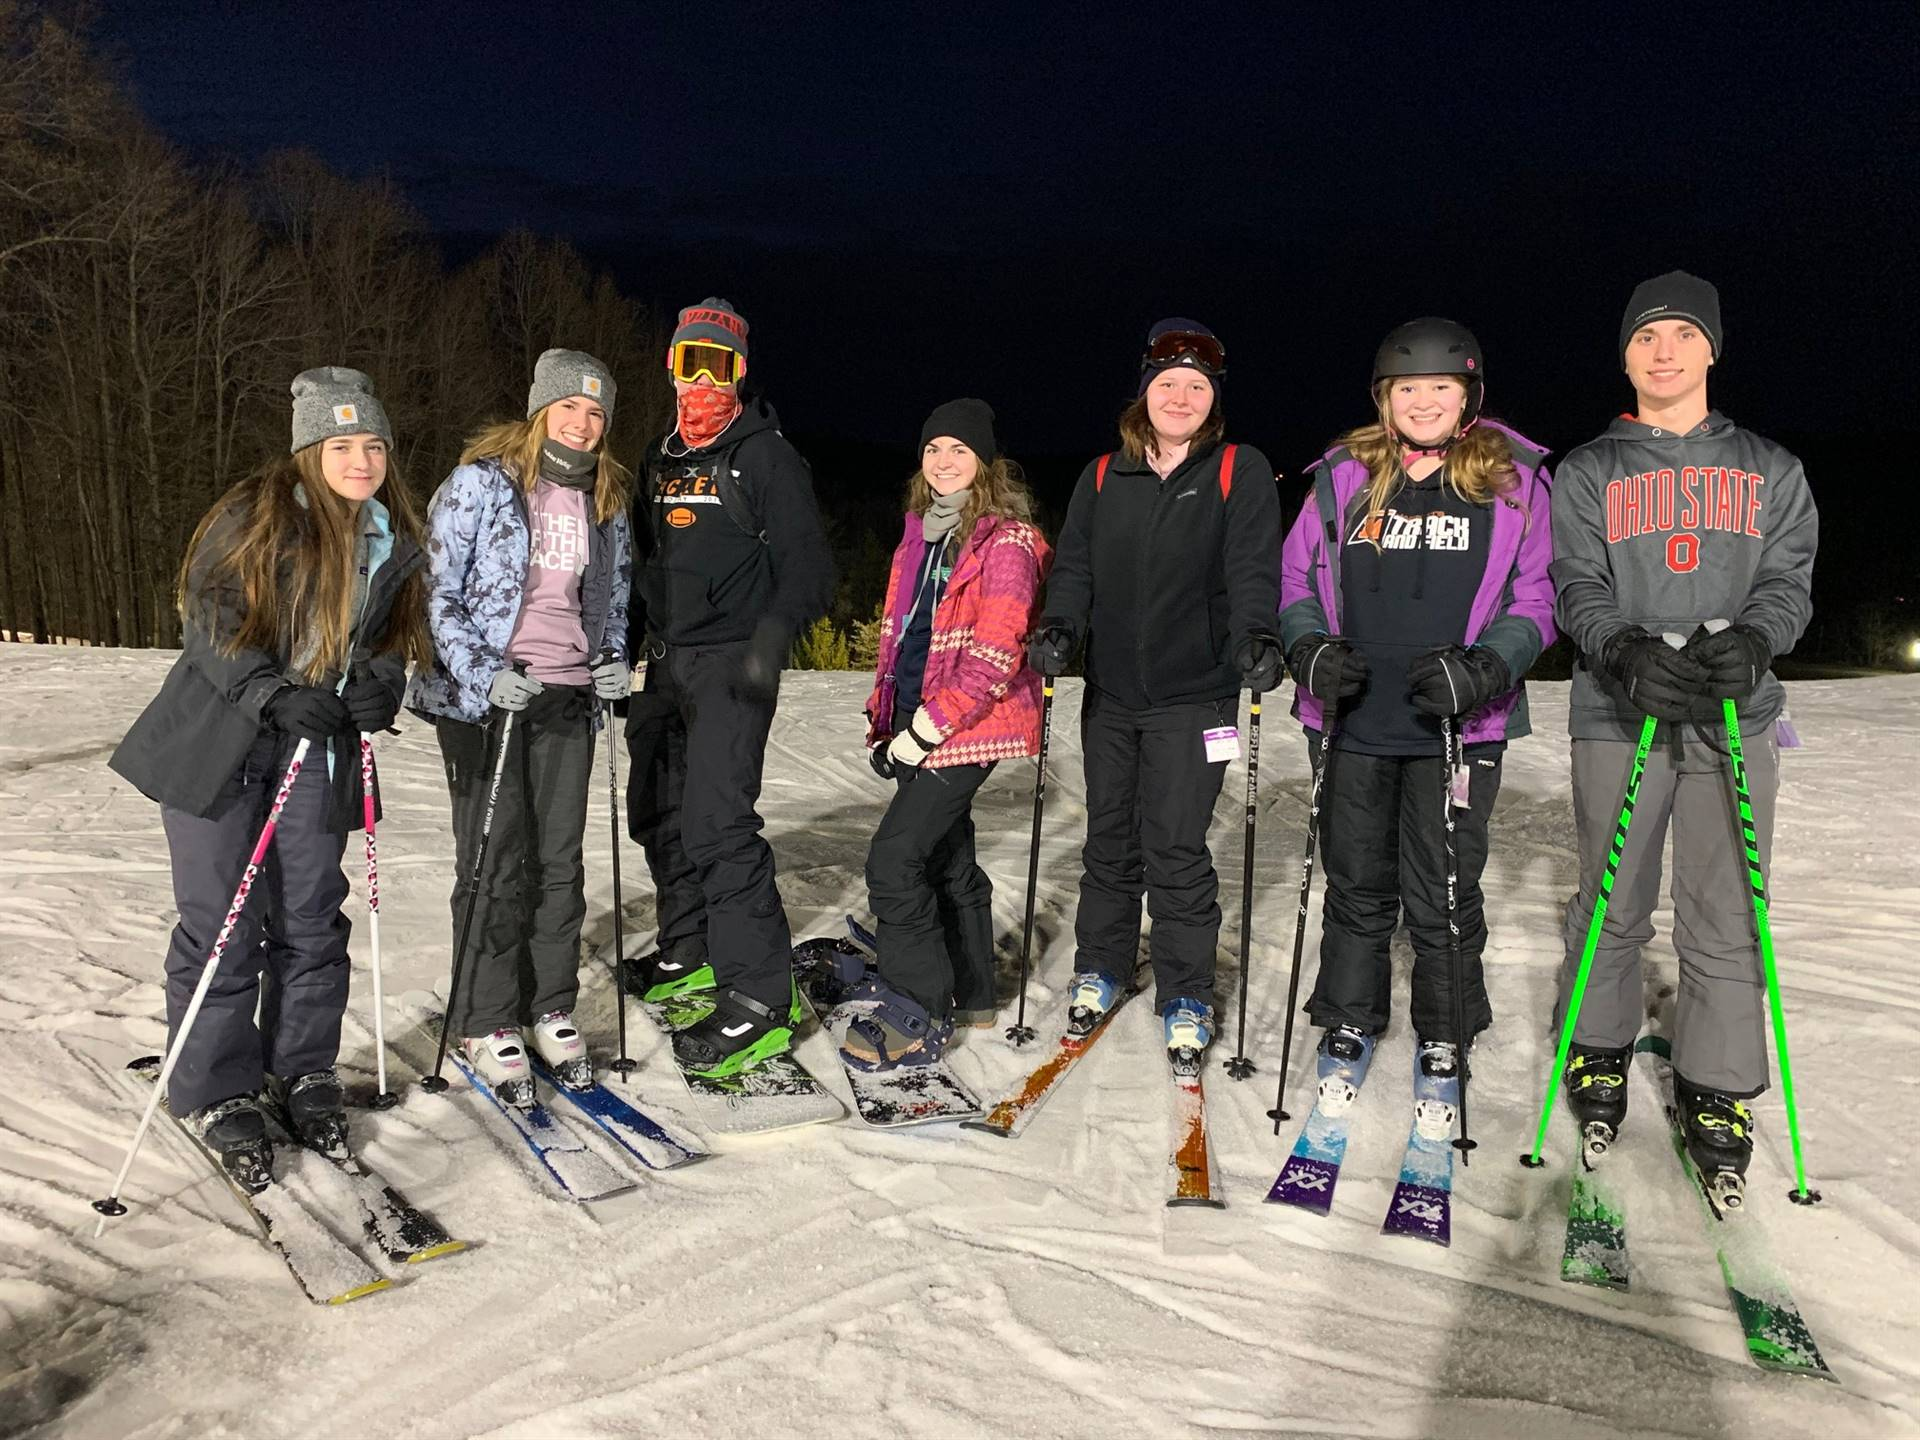 Boots and BIndings Club at Snow Trails